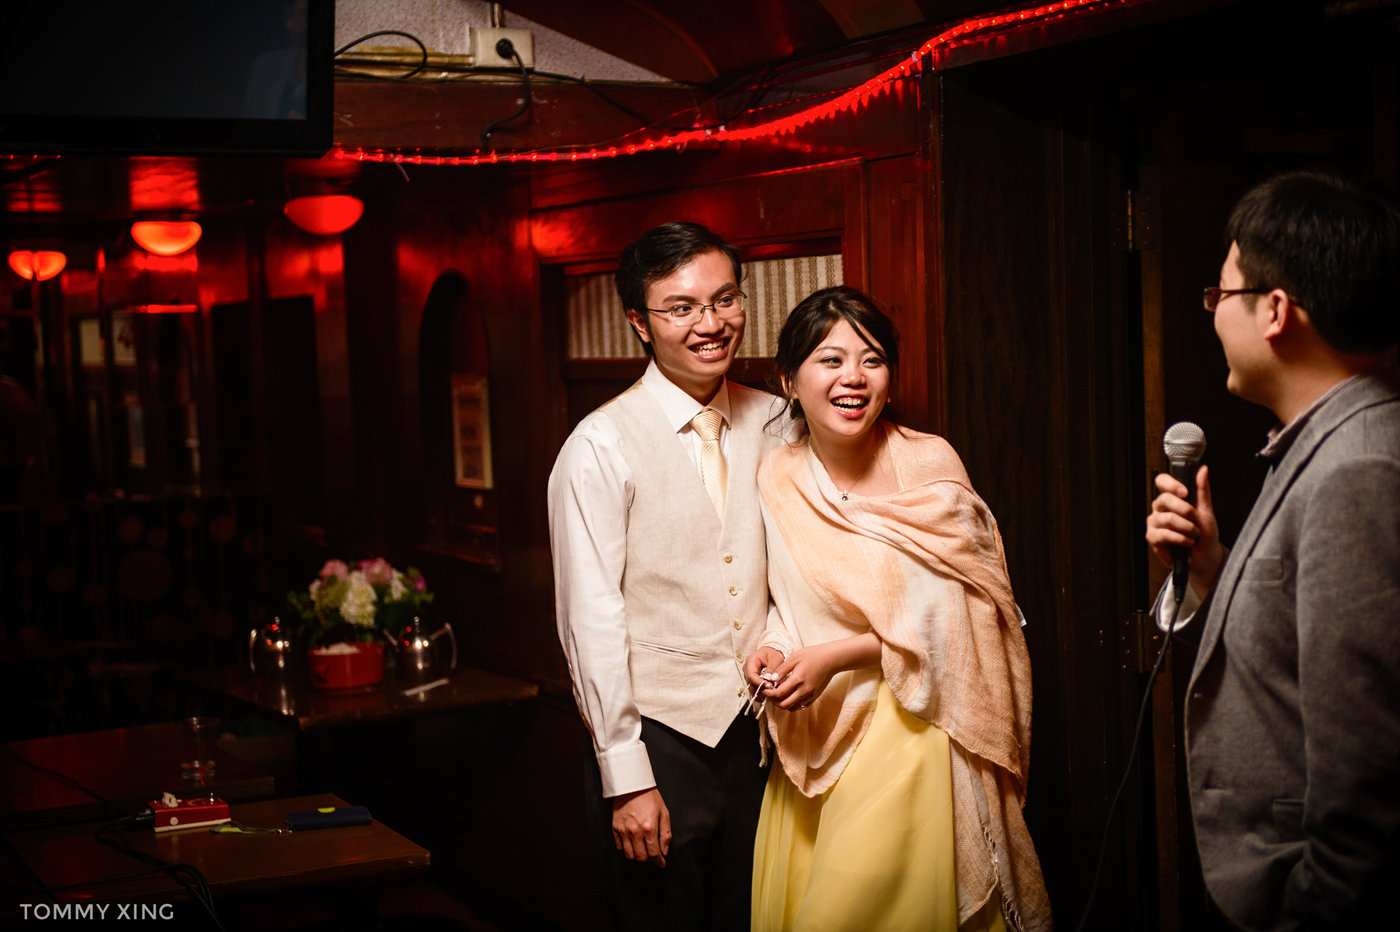 Seattle Wedding and pre wedding Los Angeles Tommy Xing Photography 西雅图洛杉矶旧金山婚礼婚纱照摄影师 235.jpg